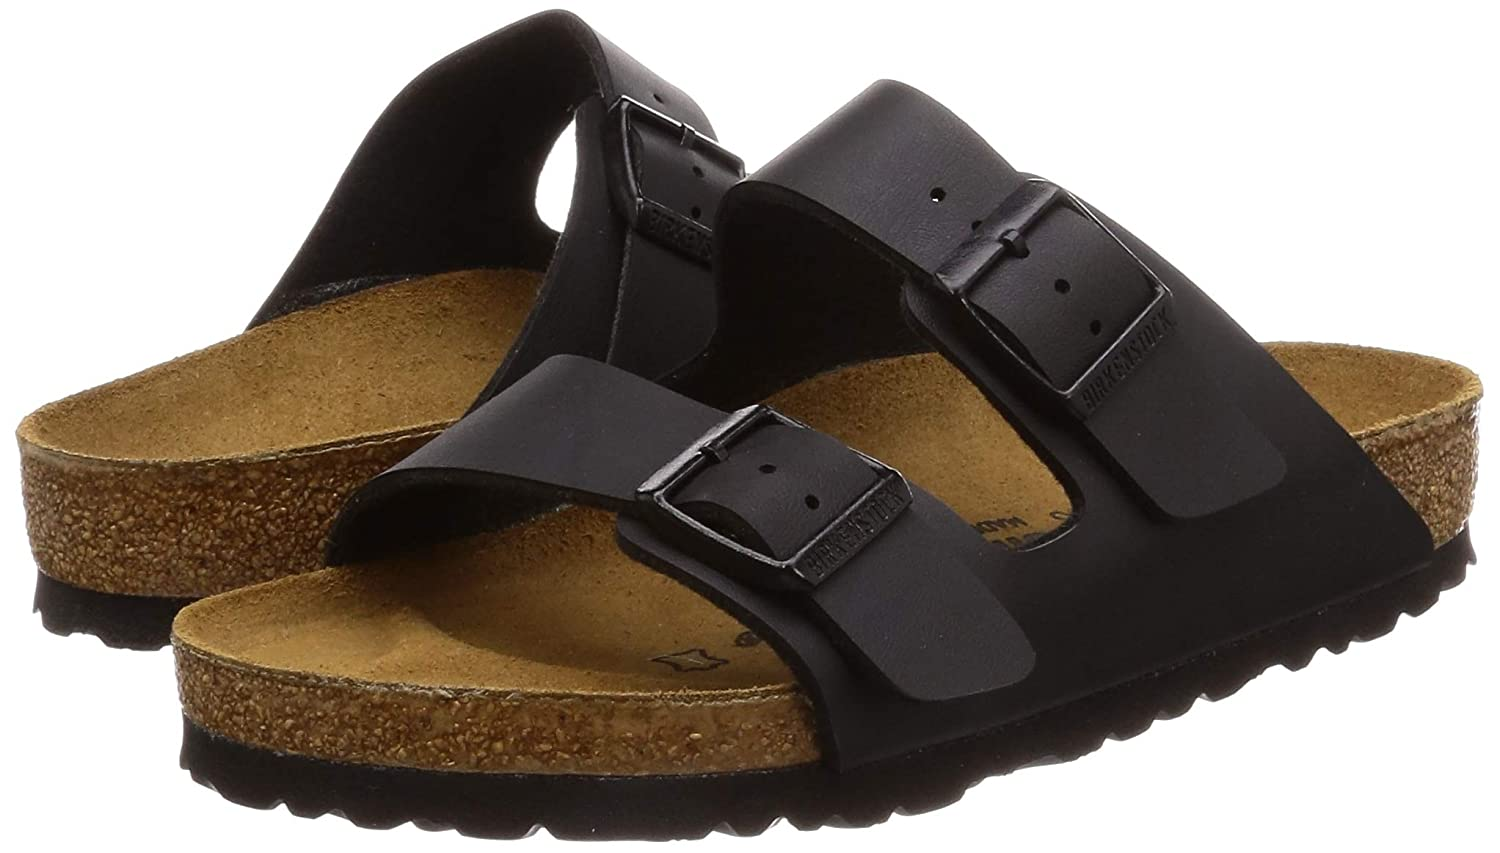 f9ad7881f228 Amazon.com  Birkenstock Arizona Sandals  Birkenstock  Shoes